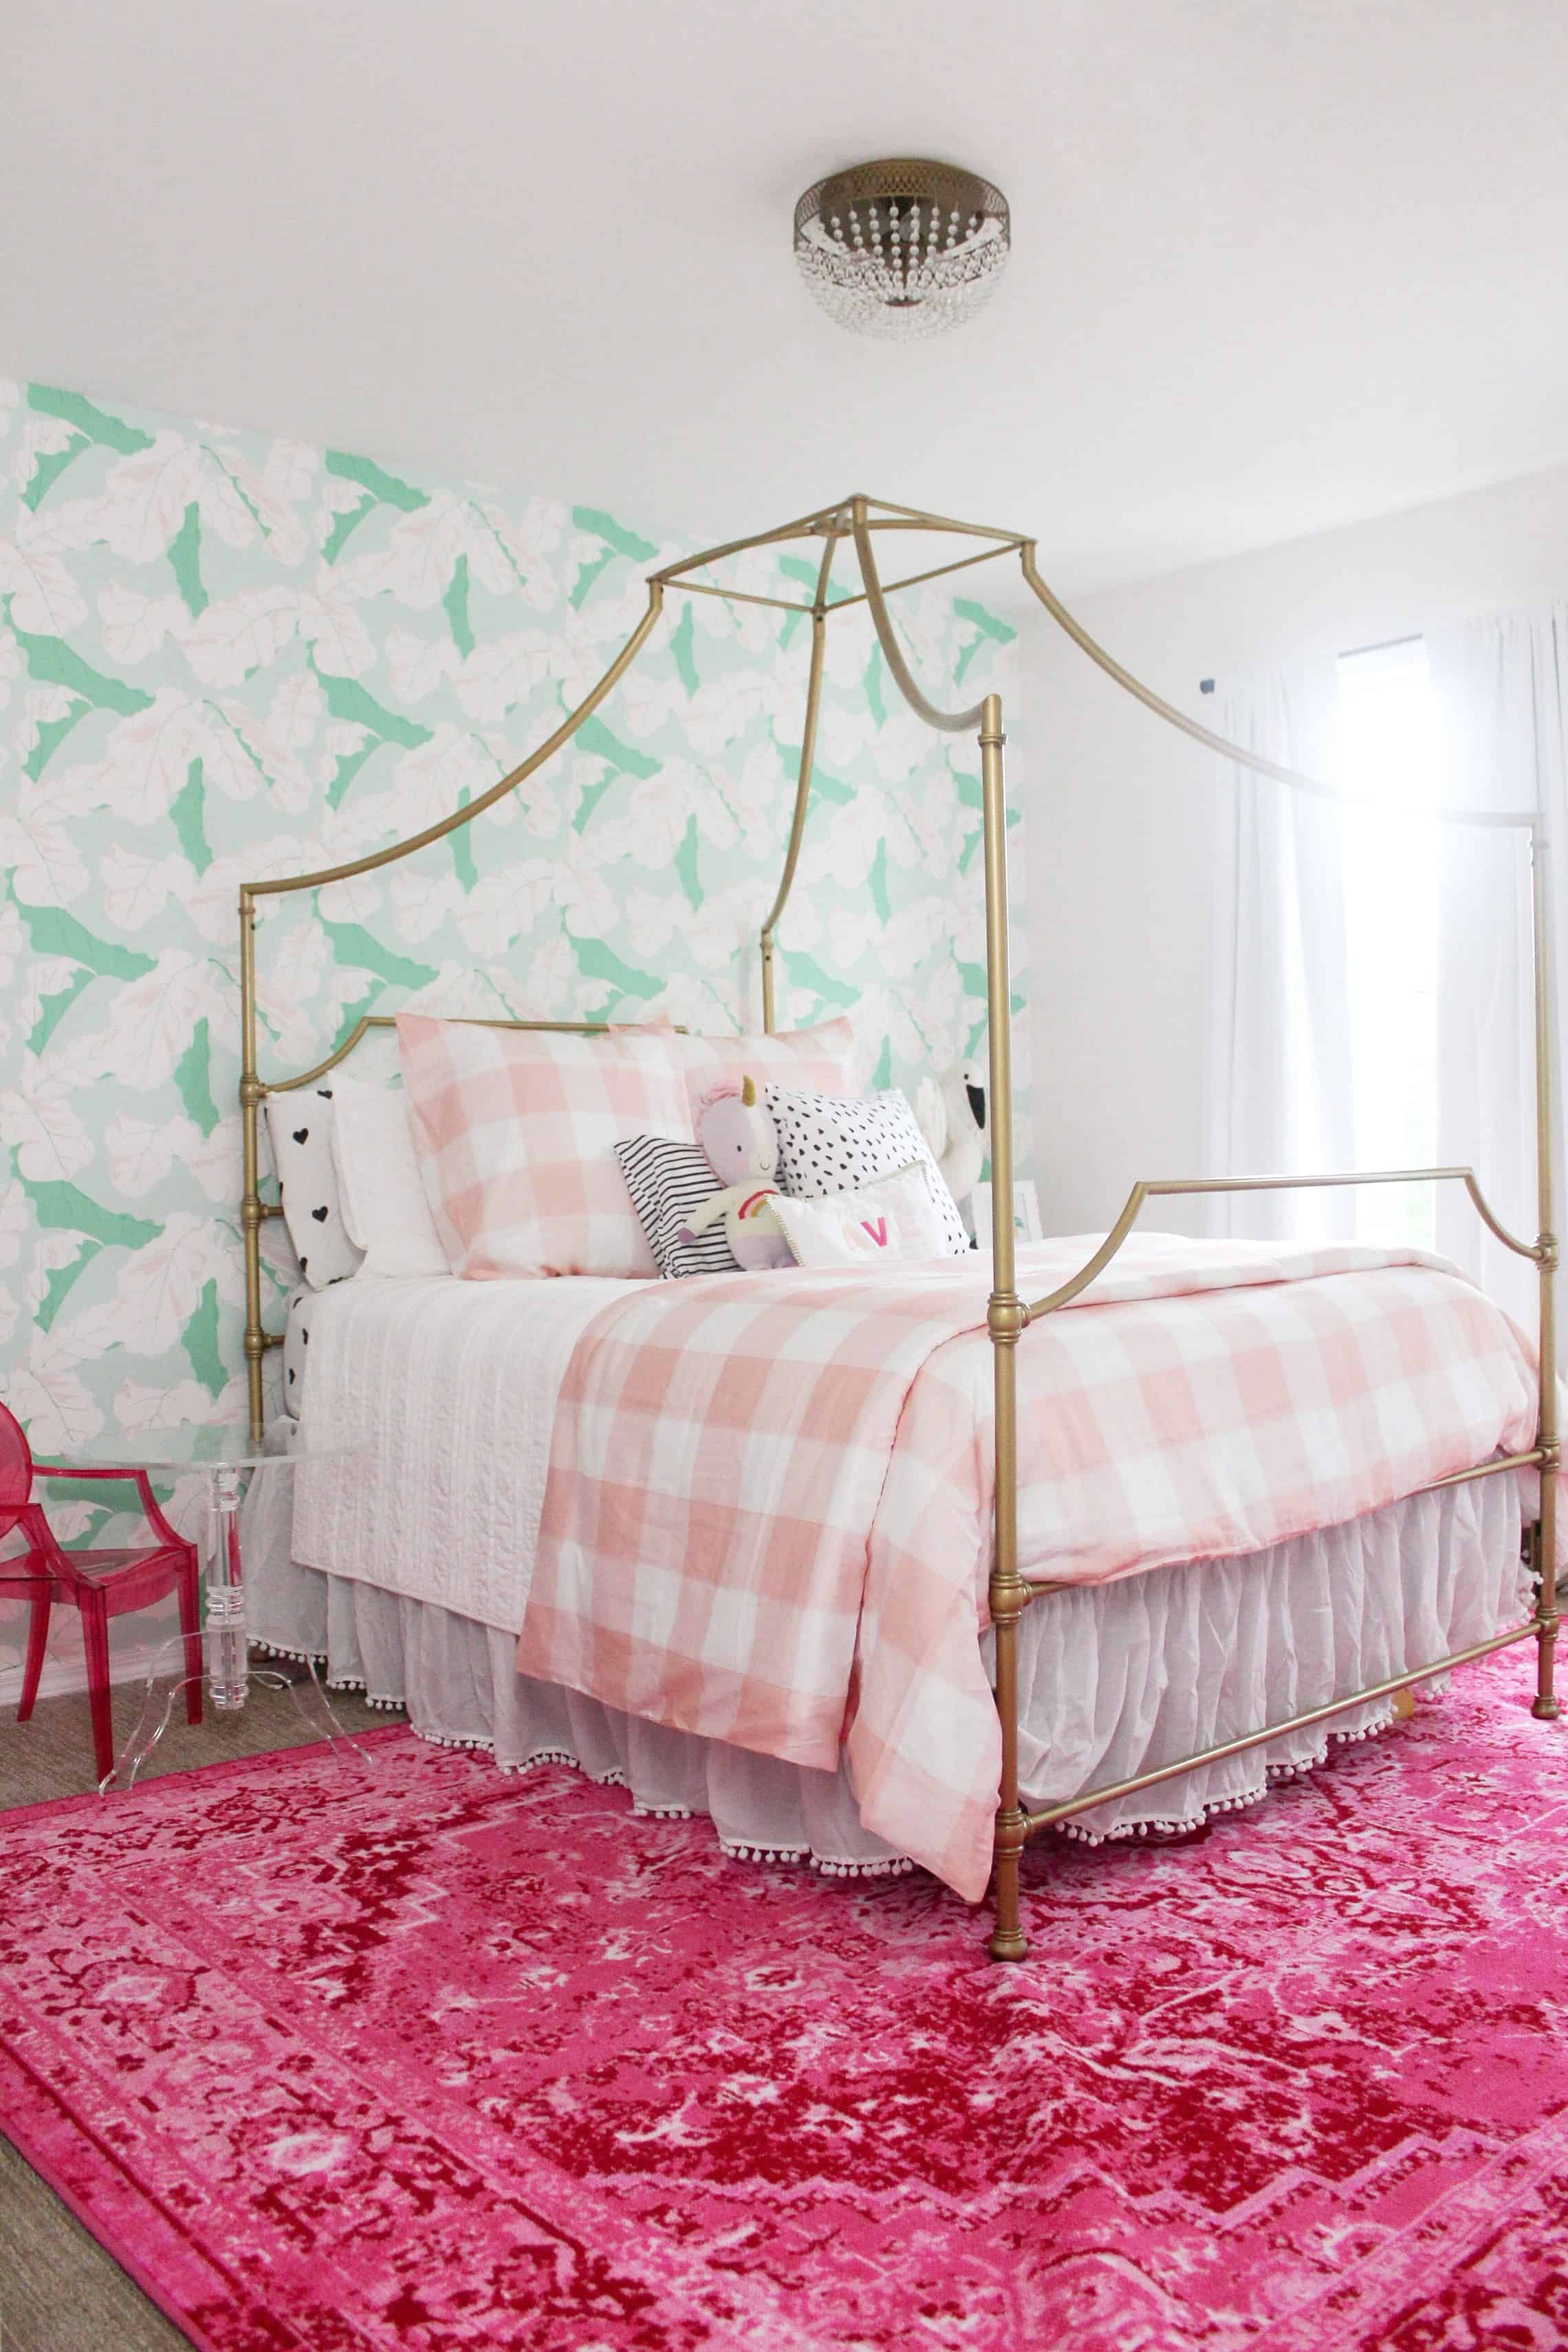 toddler girl room with pink and green wallpaper, pink rug, gold bed and pink gingham bedding  - tips for hanging Spoonflower water activated wallpaper